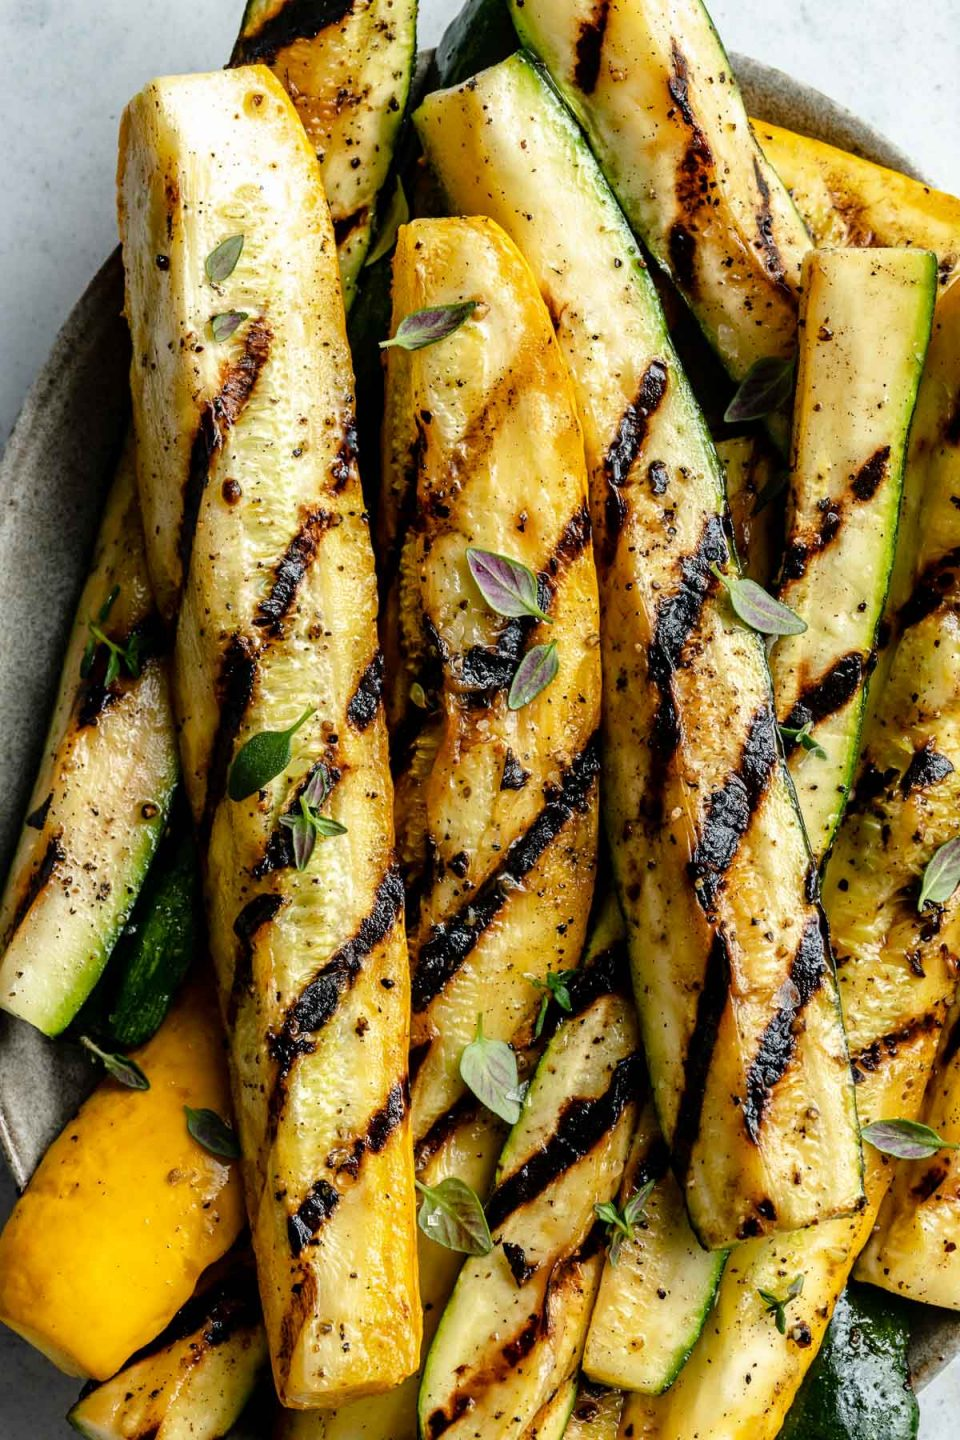 A close up of grilled slices of zucchini and yellow squash spears with char marks arranged on a brown ceramic platter. The grilled zucchini and yellow squash is garnished with kosher salt, ground black pepper, & fresh herbs. The platter sits on top of a white & gray marble surface.